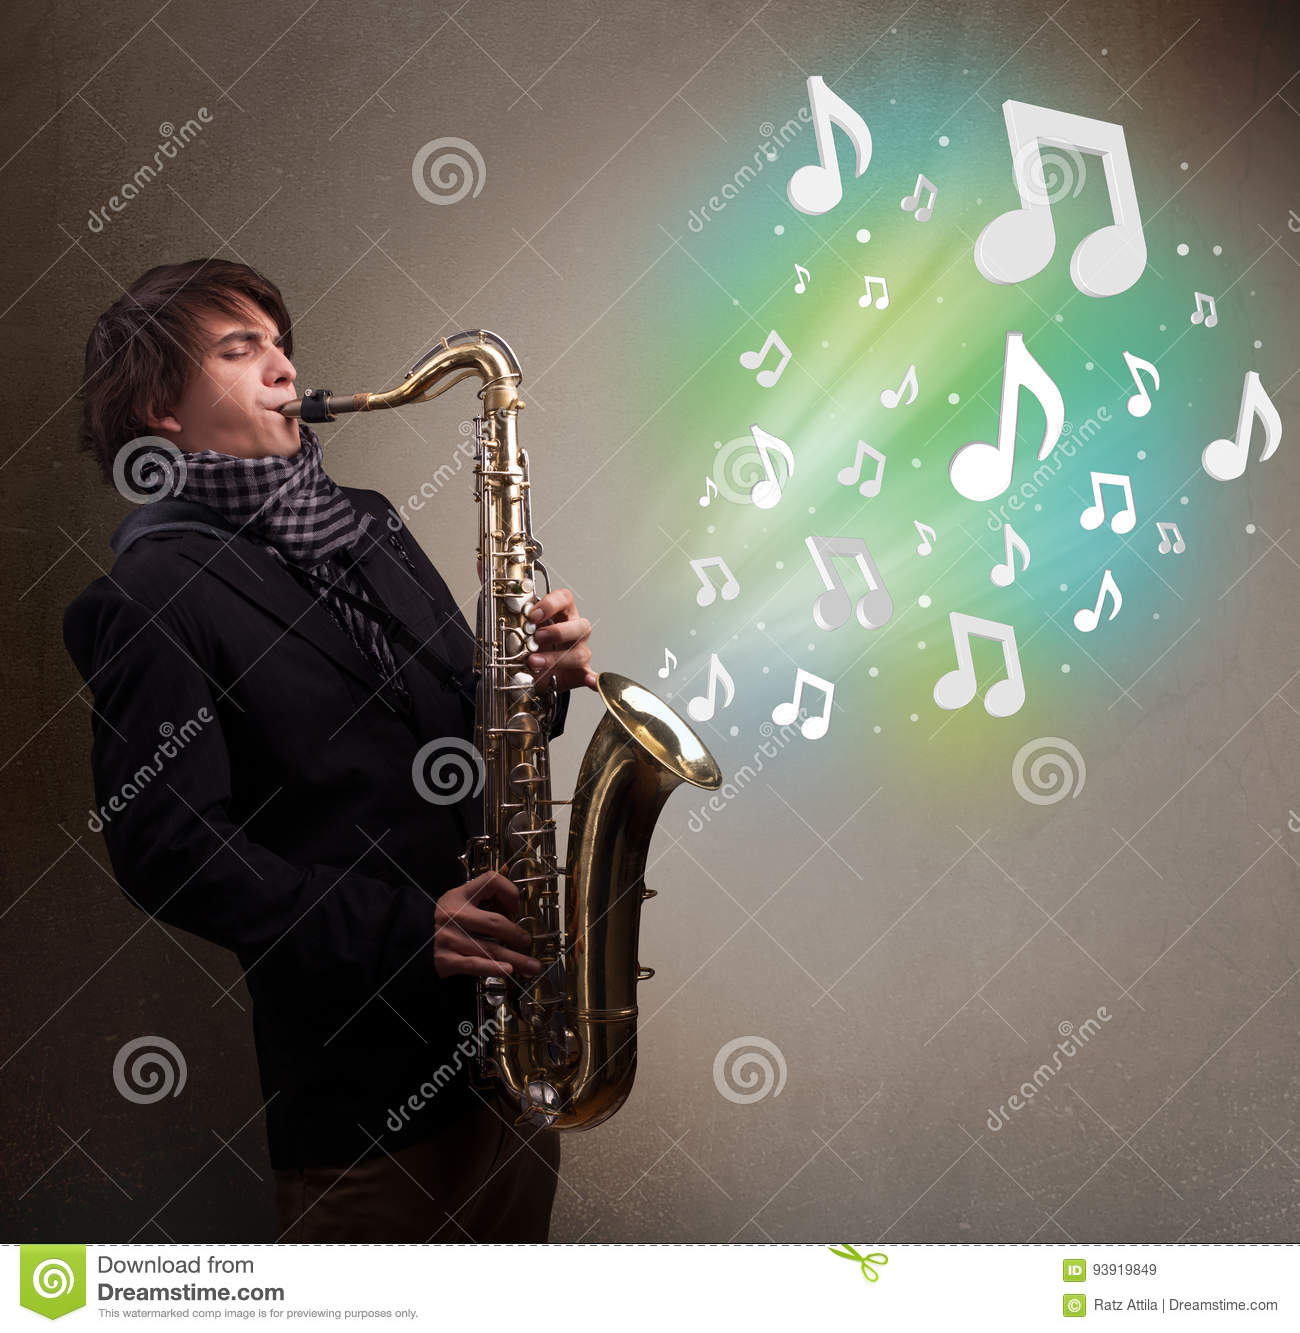 Young musician playing on saxophone while musical notes exploding